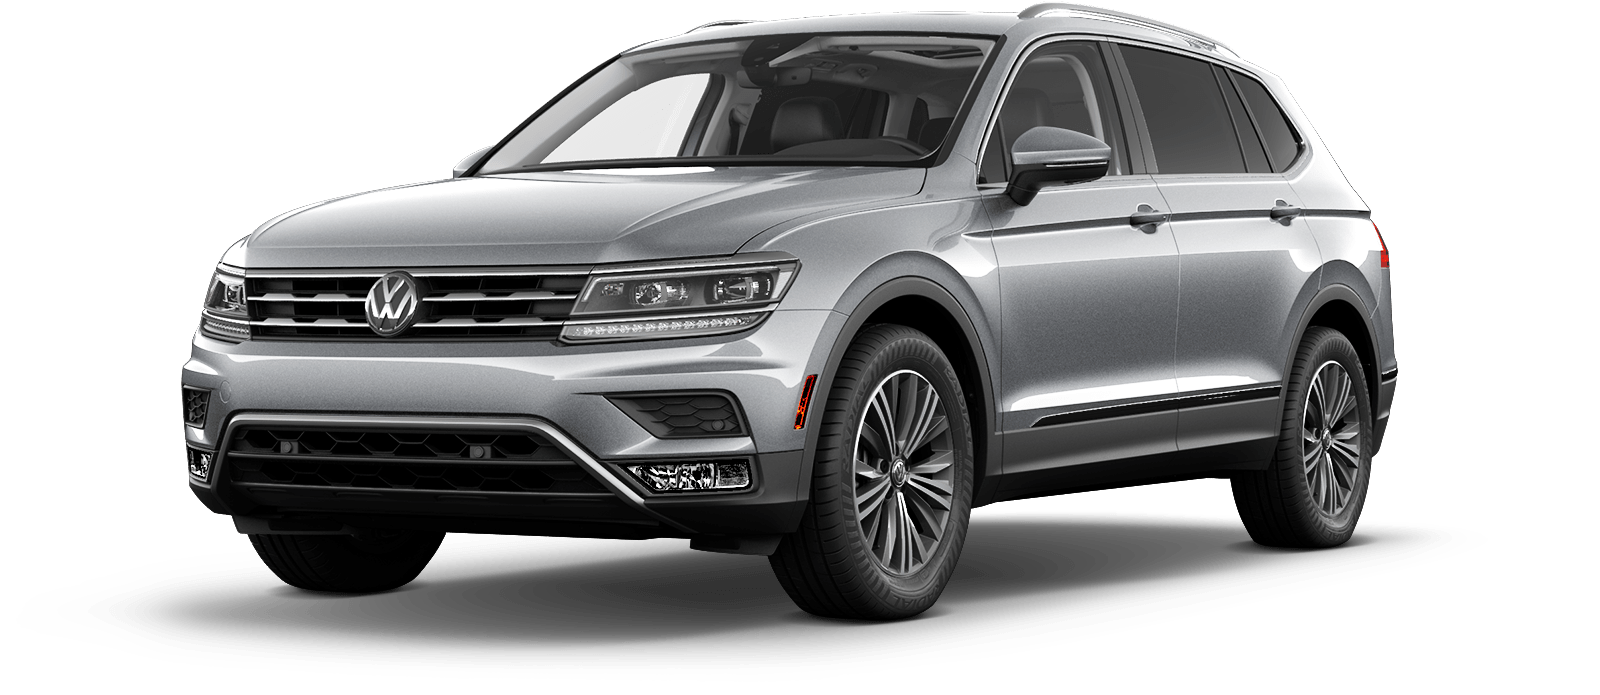 What Are The 2018 Vw Tiguan Exterior Paint Color Options 2014 Ford Chart Platinum Grey Metallic